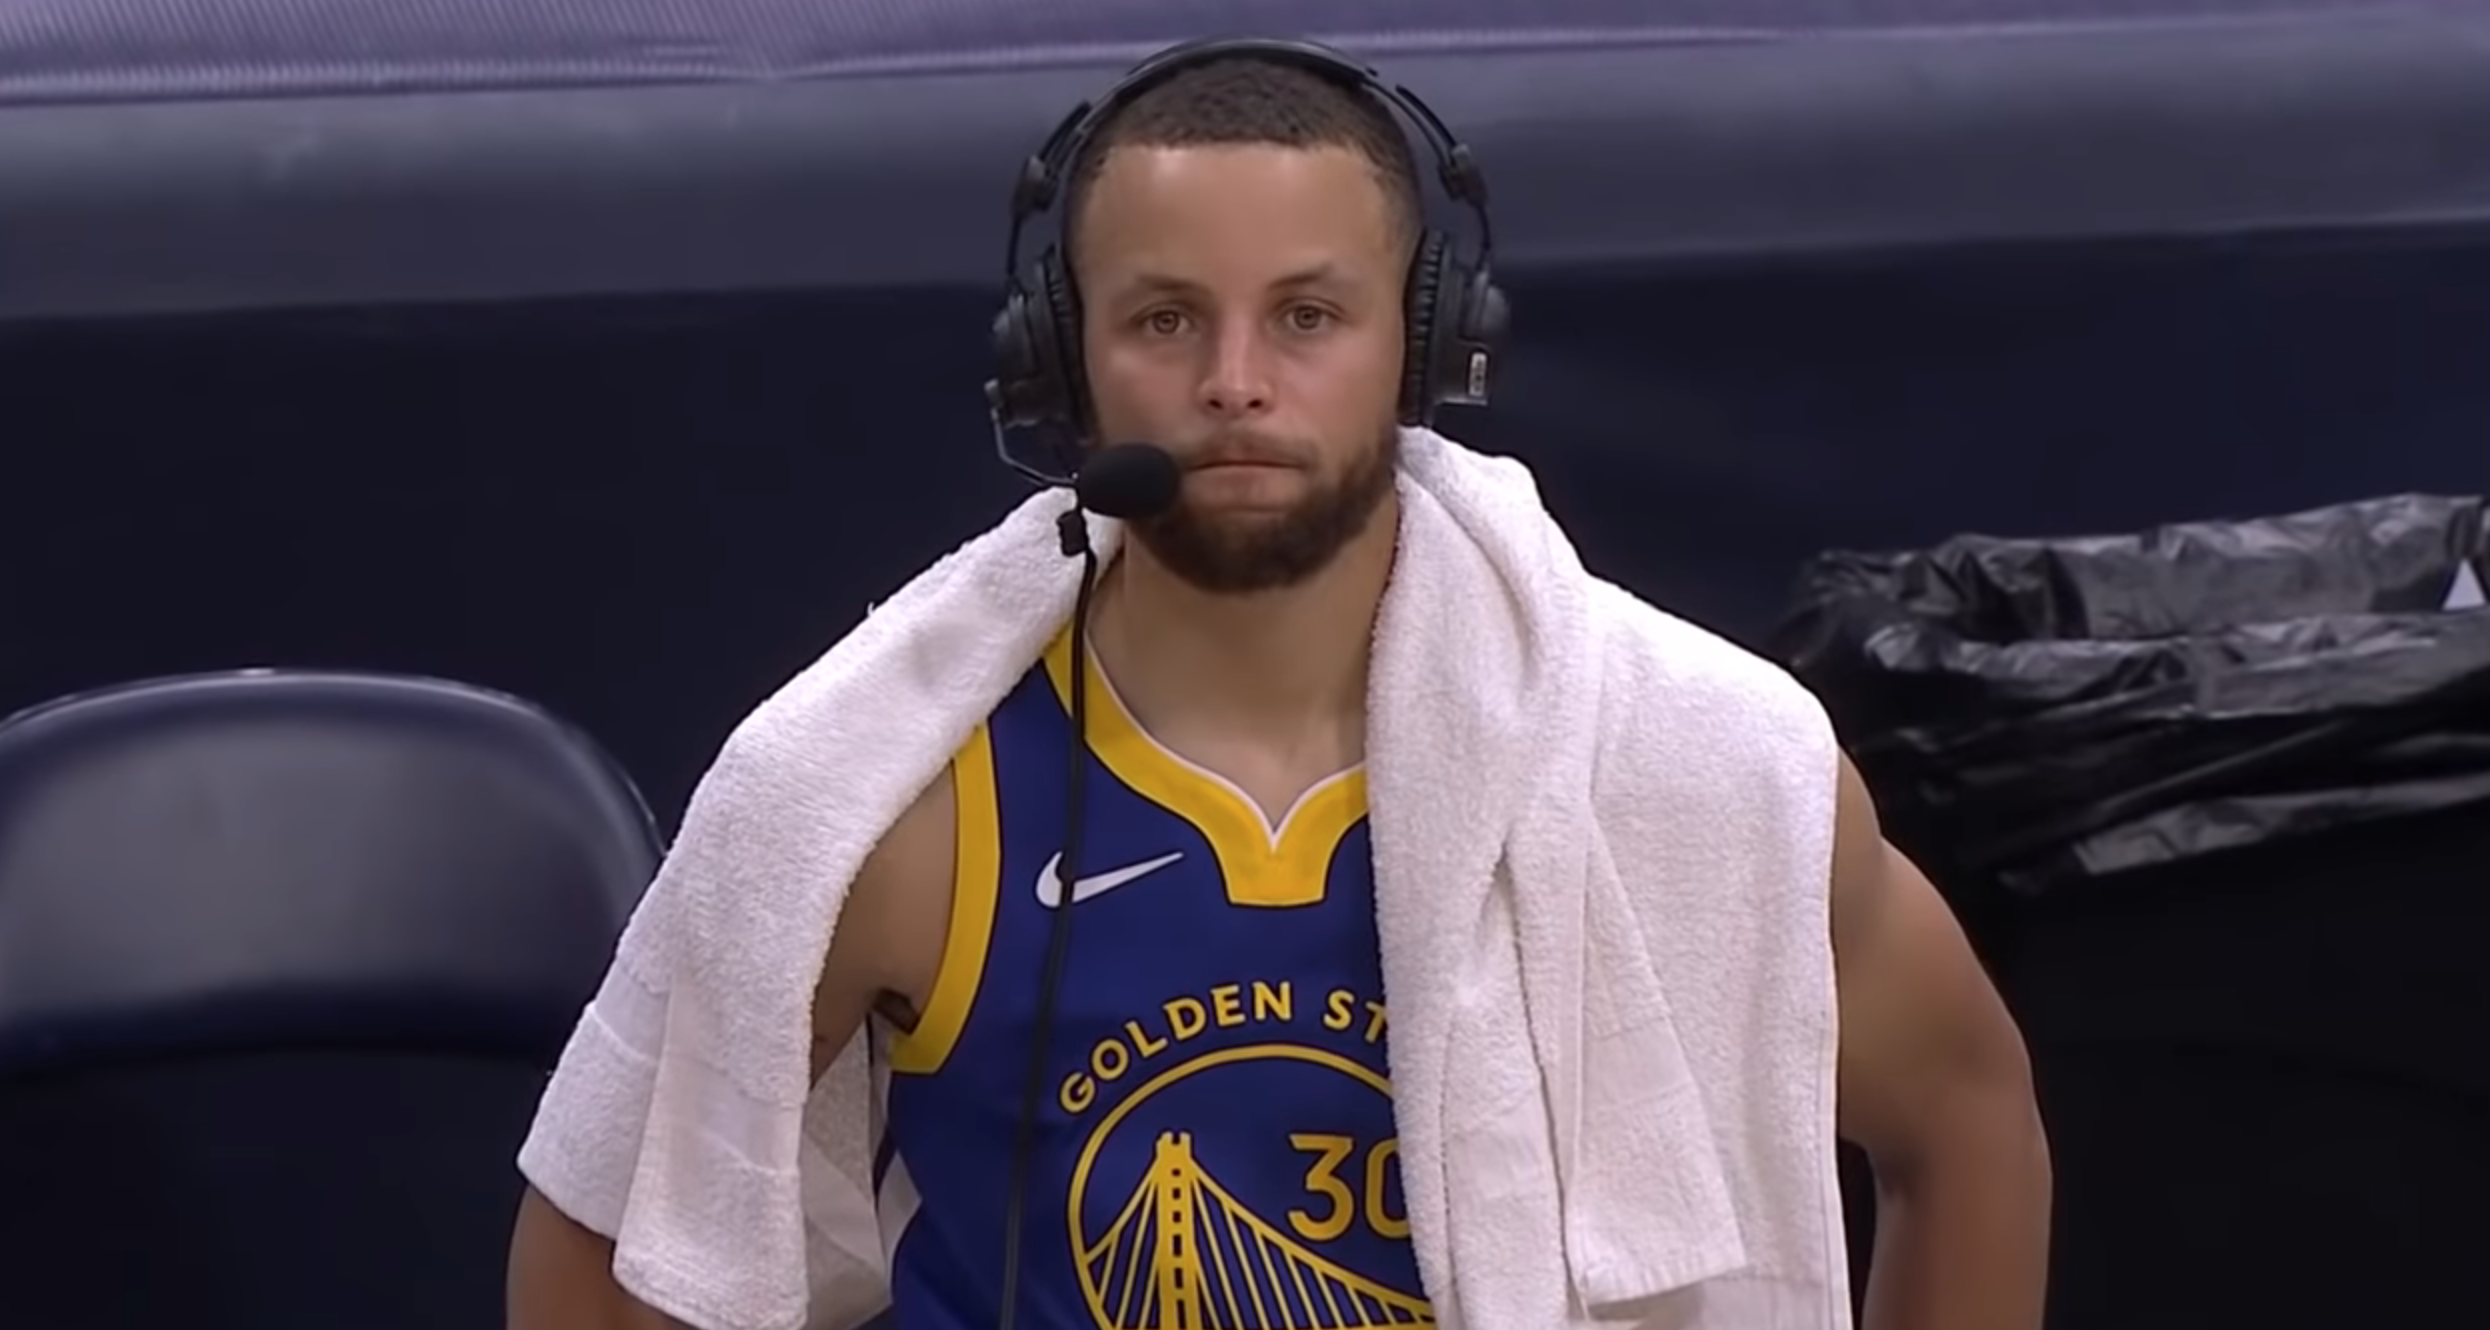 Arena of Heroes Steph Curry